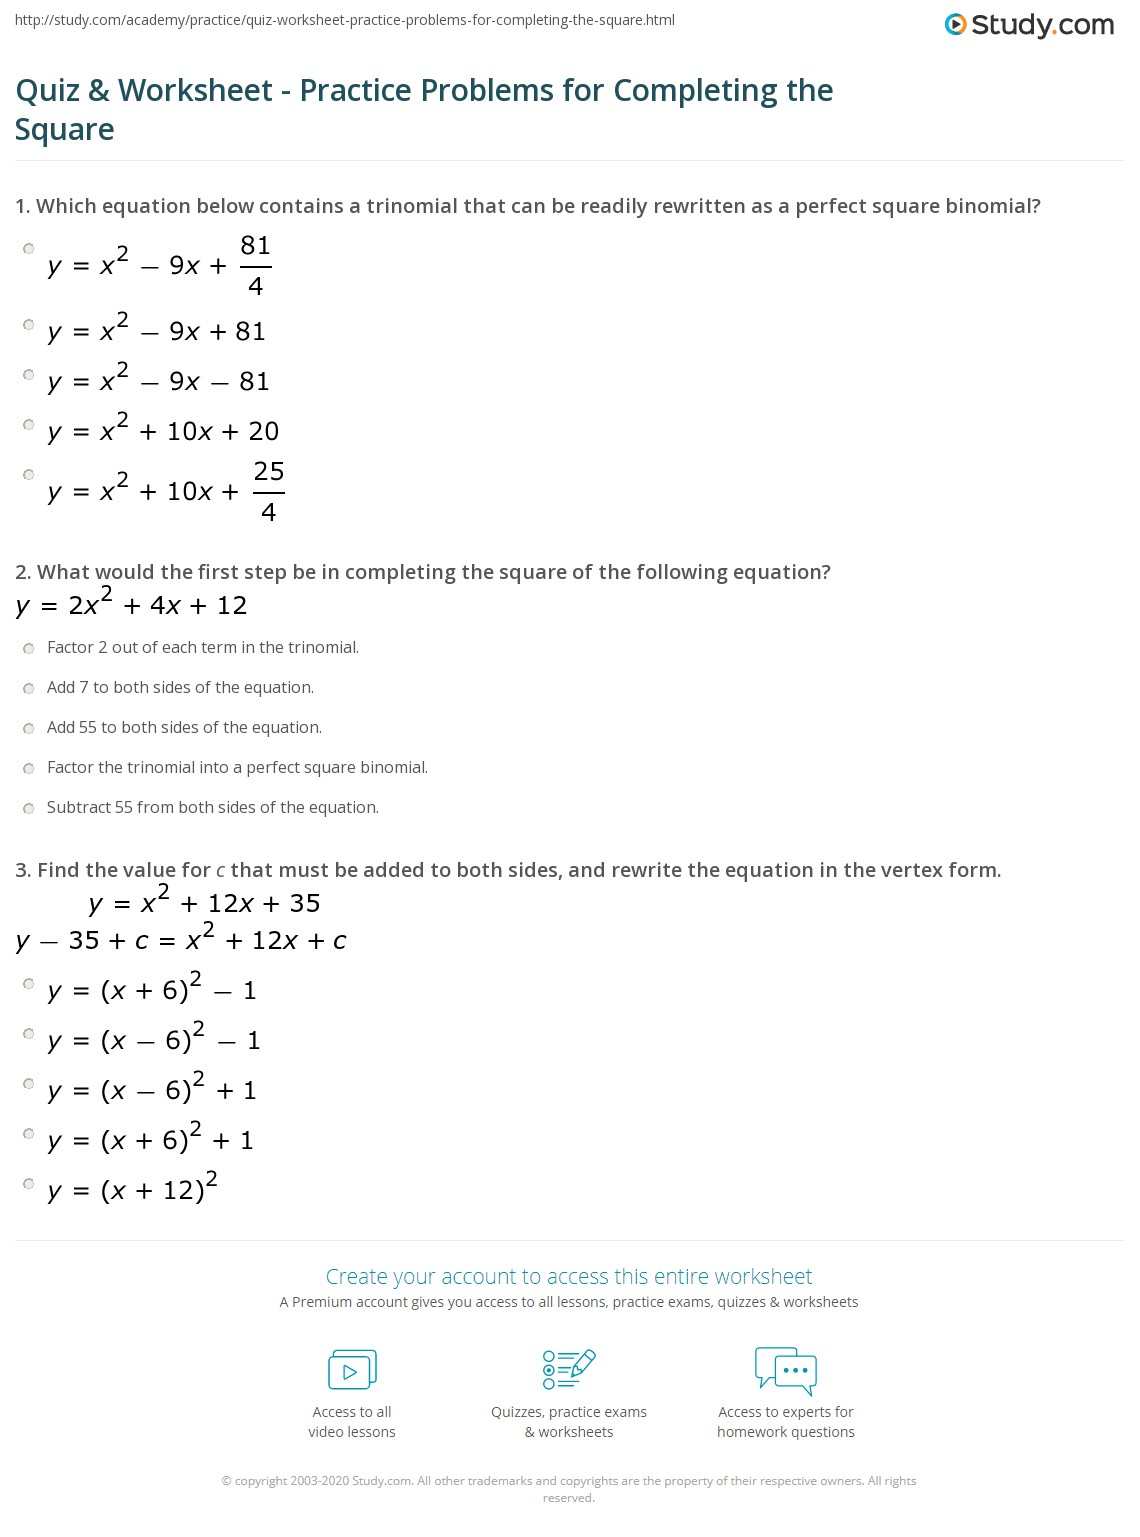 quiz worksheet practice problems for completing the square. Black Bedroom Furniture Sets. Home Design Ideas